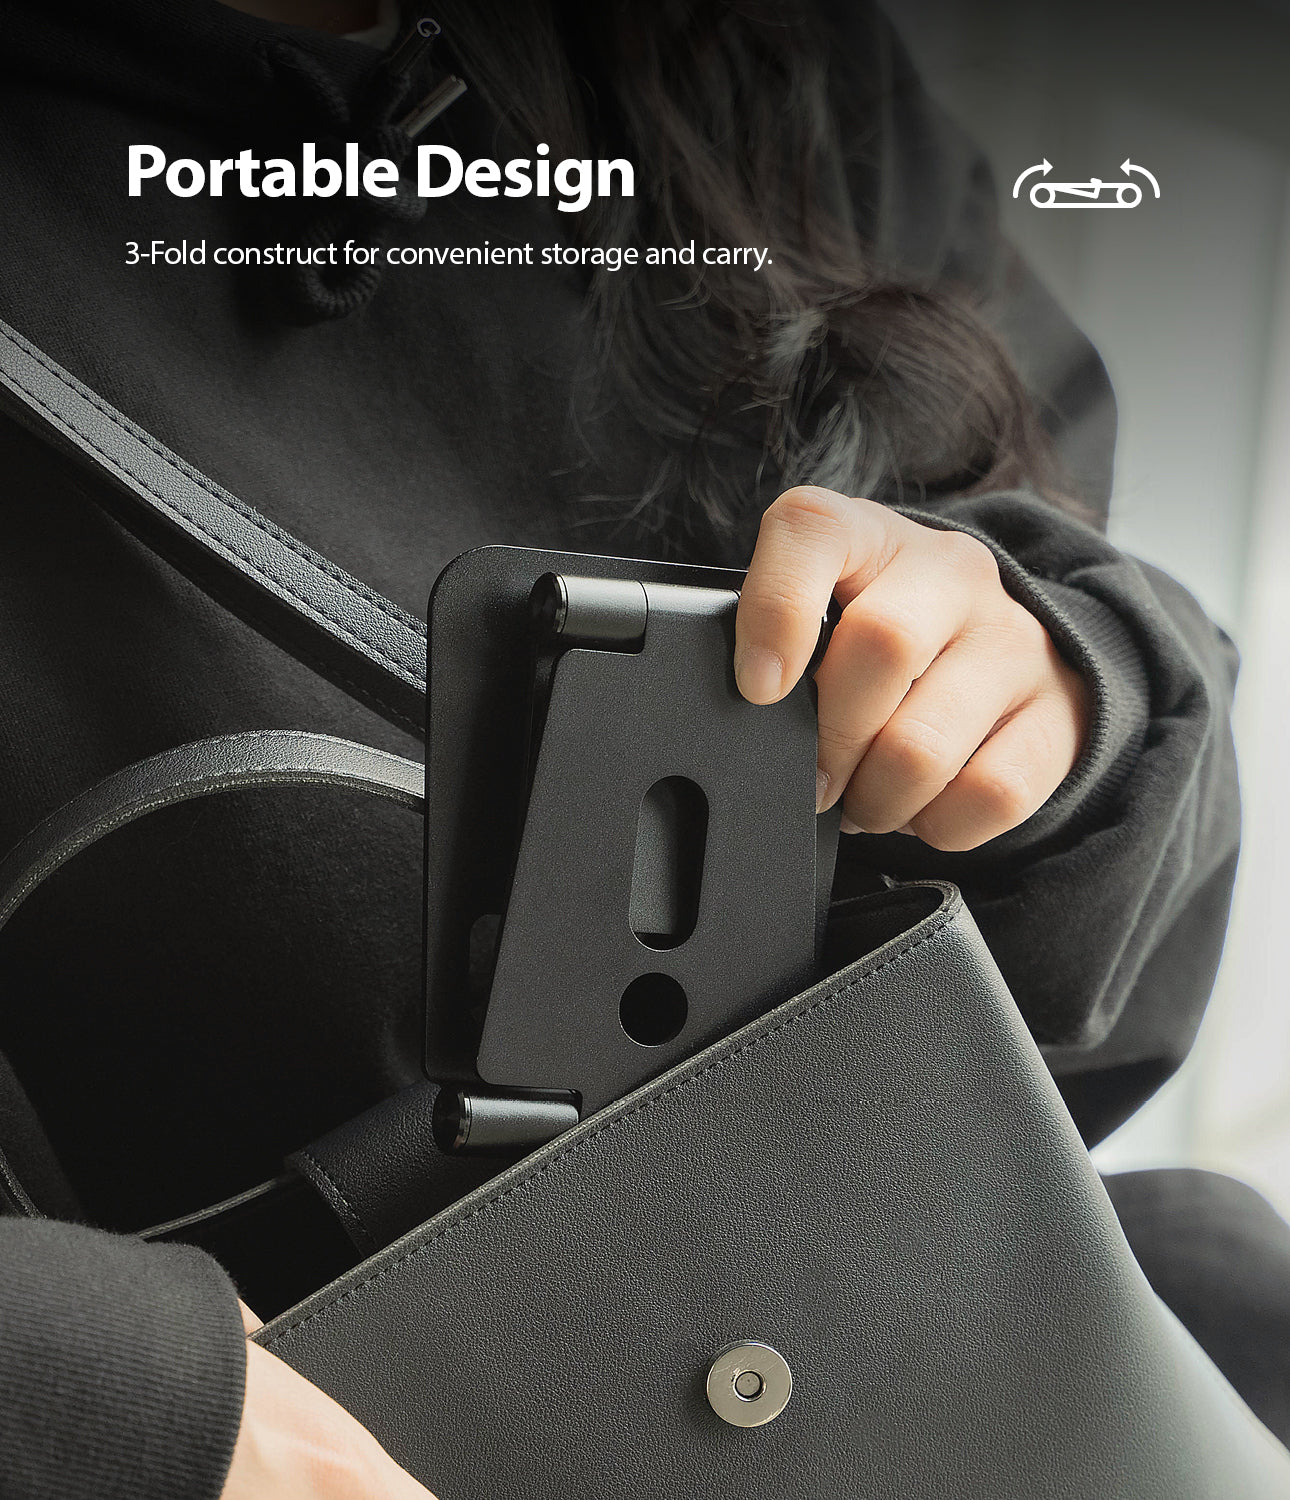 protable design provided with a slim profile